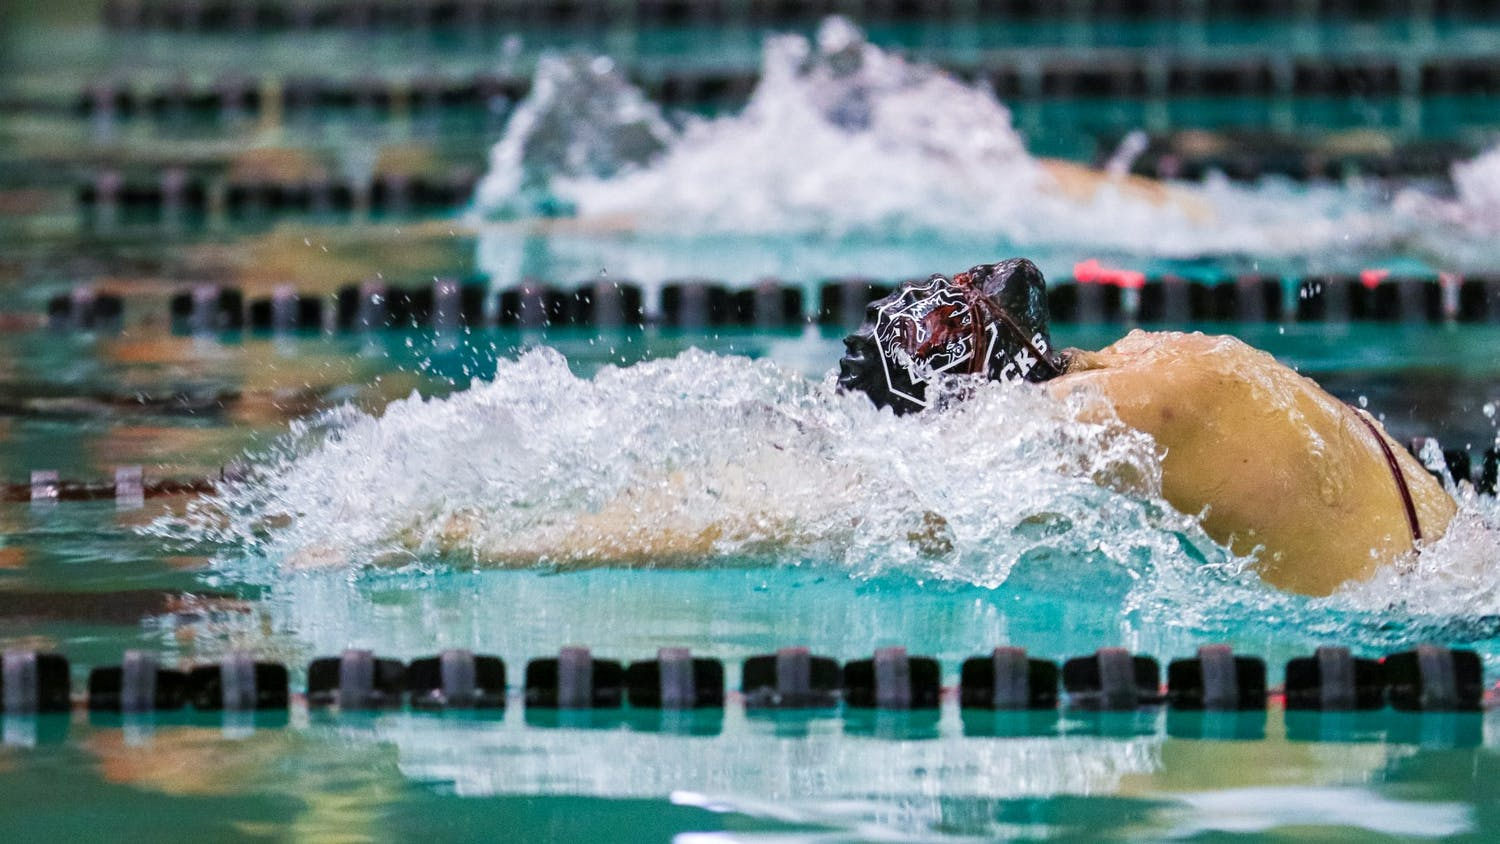 Freshman Maddy Norford swims the 100-meter breaststroke during the Gamecocks' meet against Georgia Tech on Jan. 18, 2020. The team earned a win at home, 197-103.